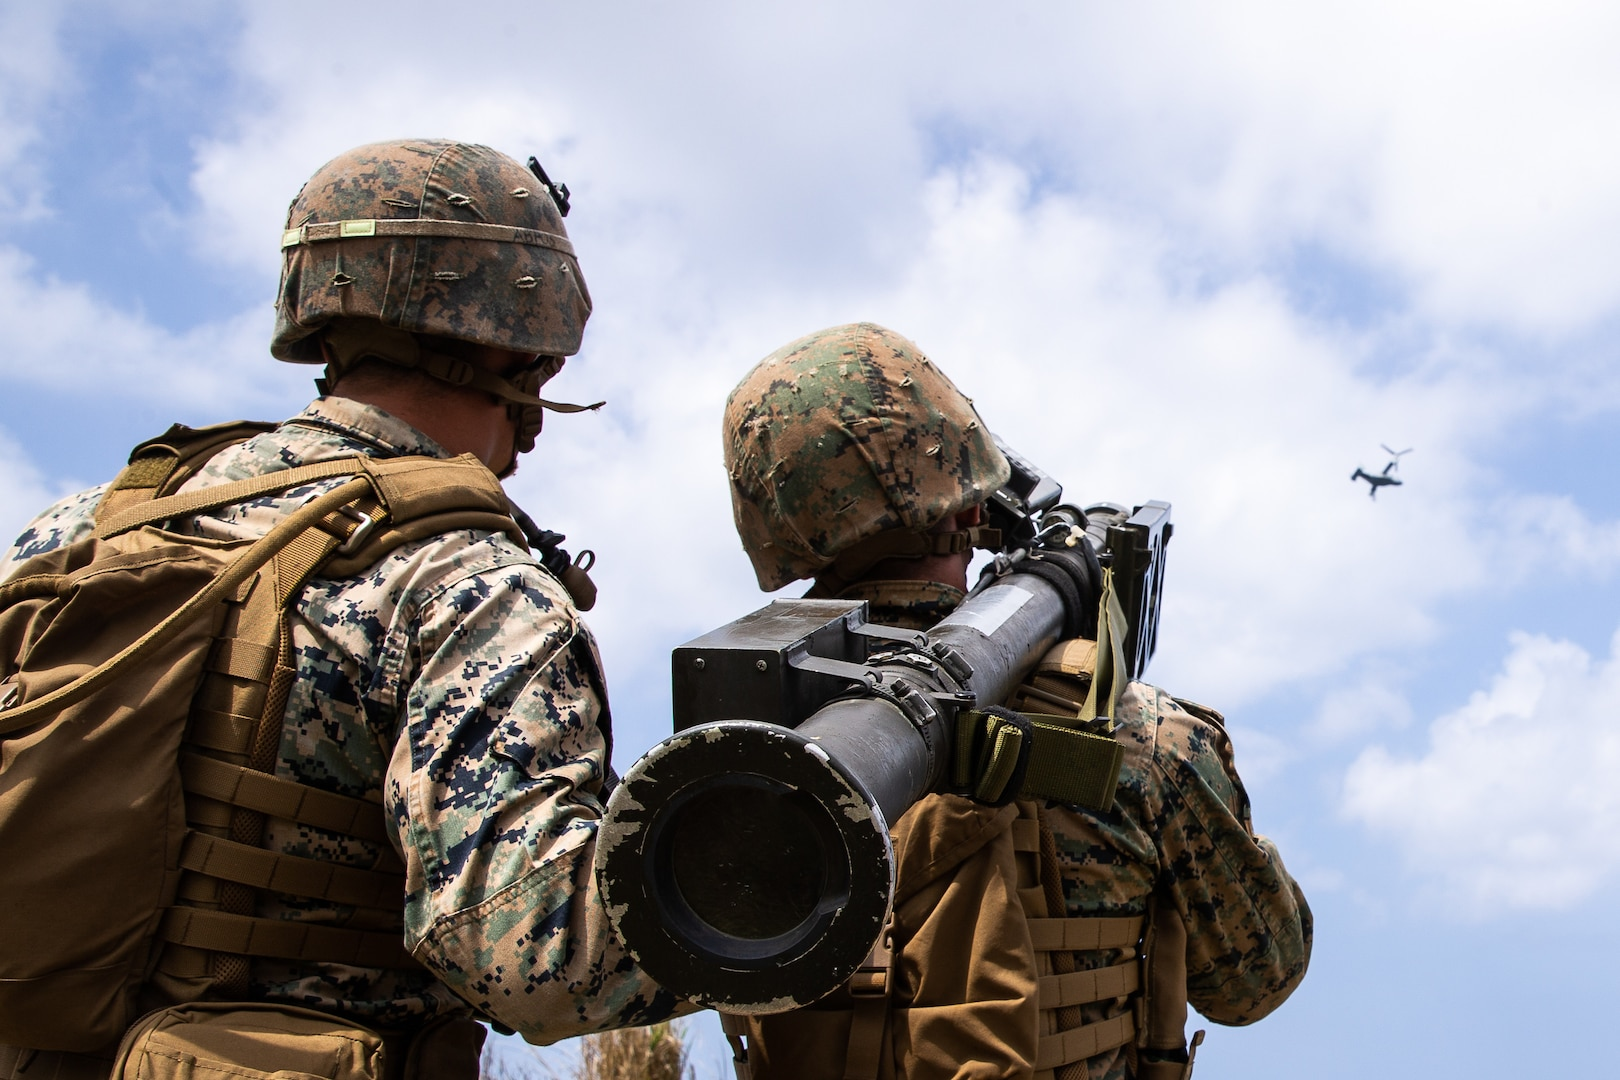 U.S. Marines provide surface-to-air defense using the FIM-92 Stinger during Castaway 21.1 on Ie Shima, Okinawa, Japan, March 16.